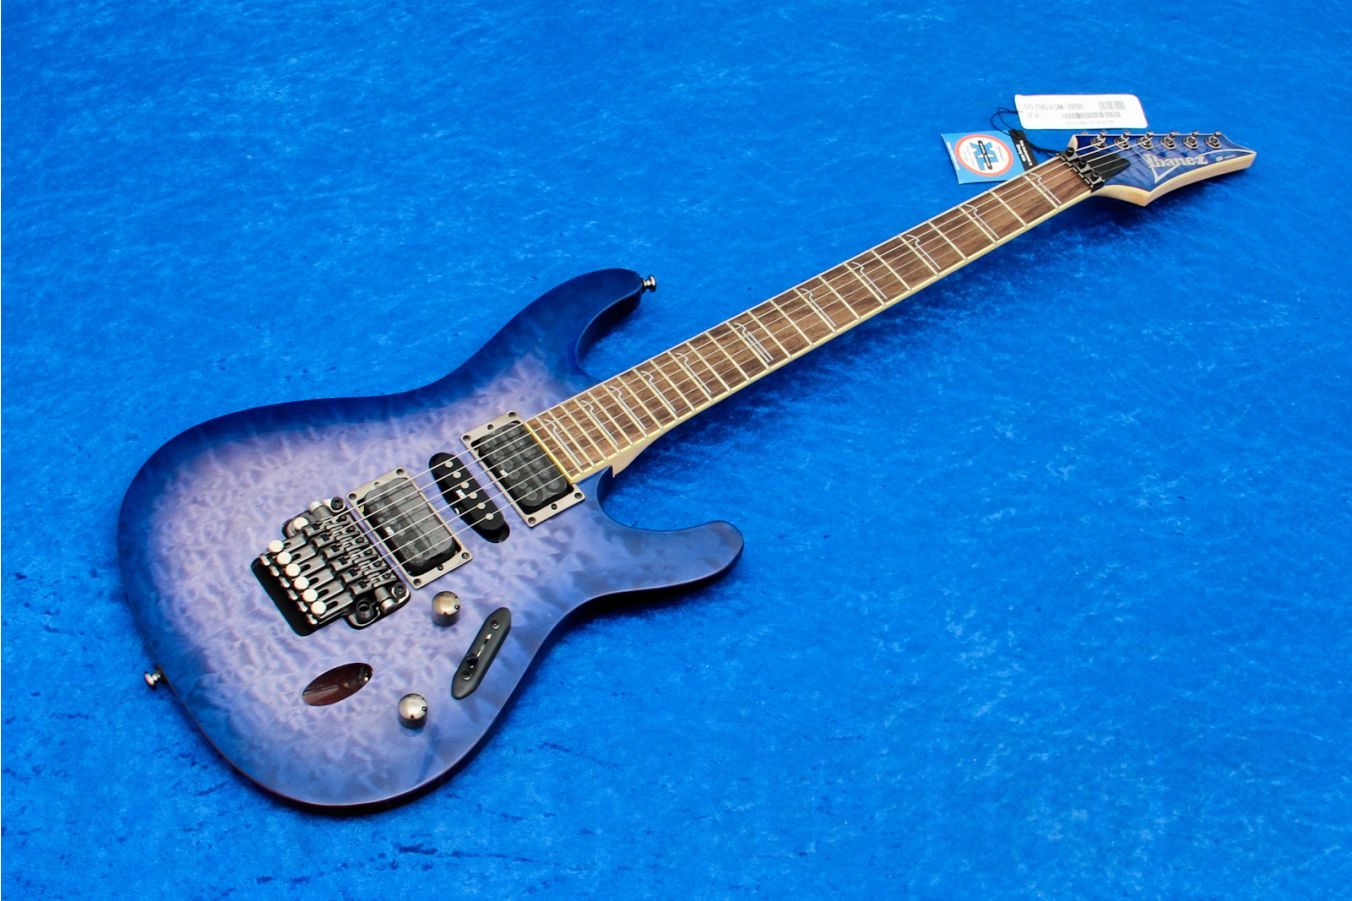 Ibanez S570DXQM BBB - Bright Blue Burst